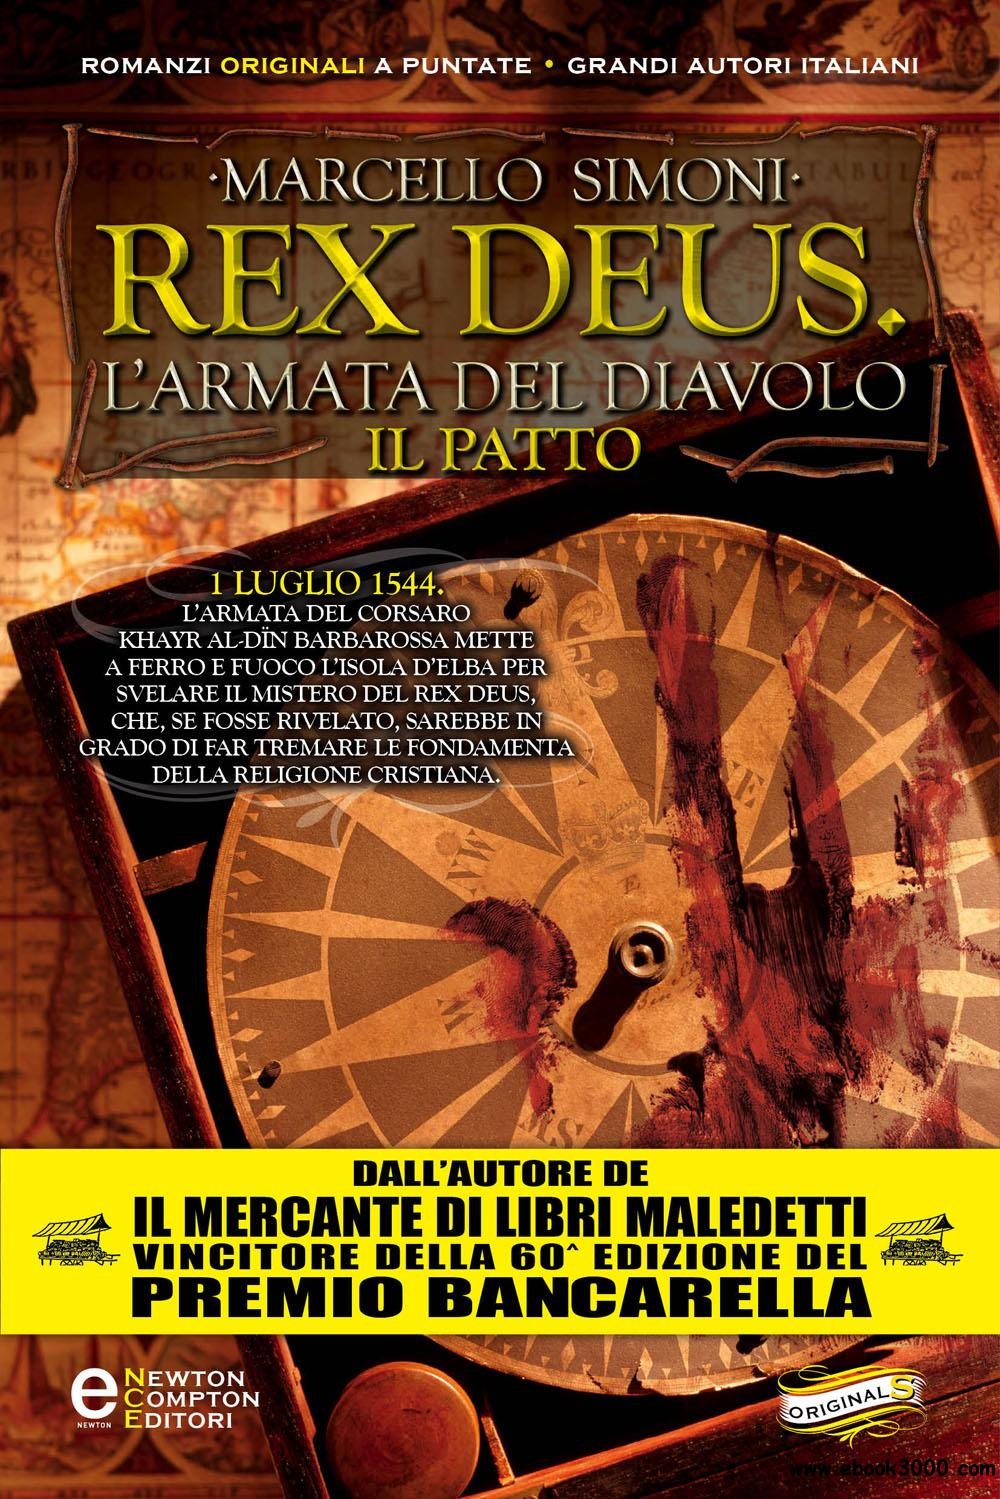 Marcello Simoni - Il patto. Rex Deus. L'armata del diavolo free download